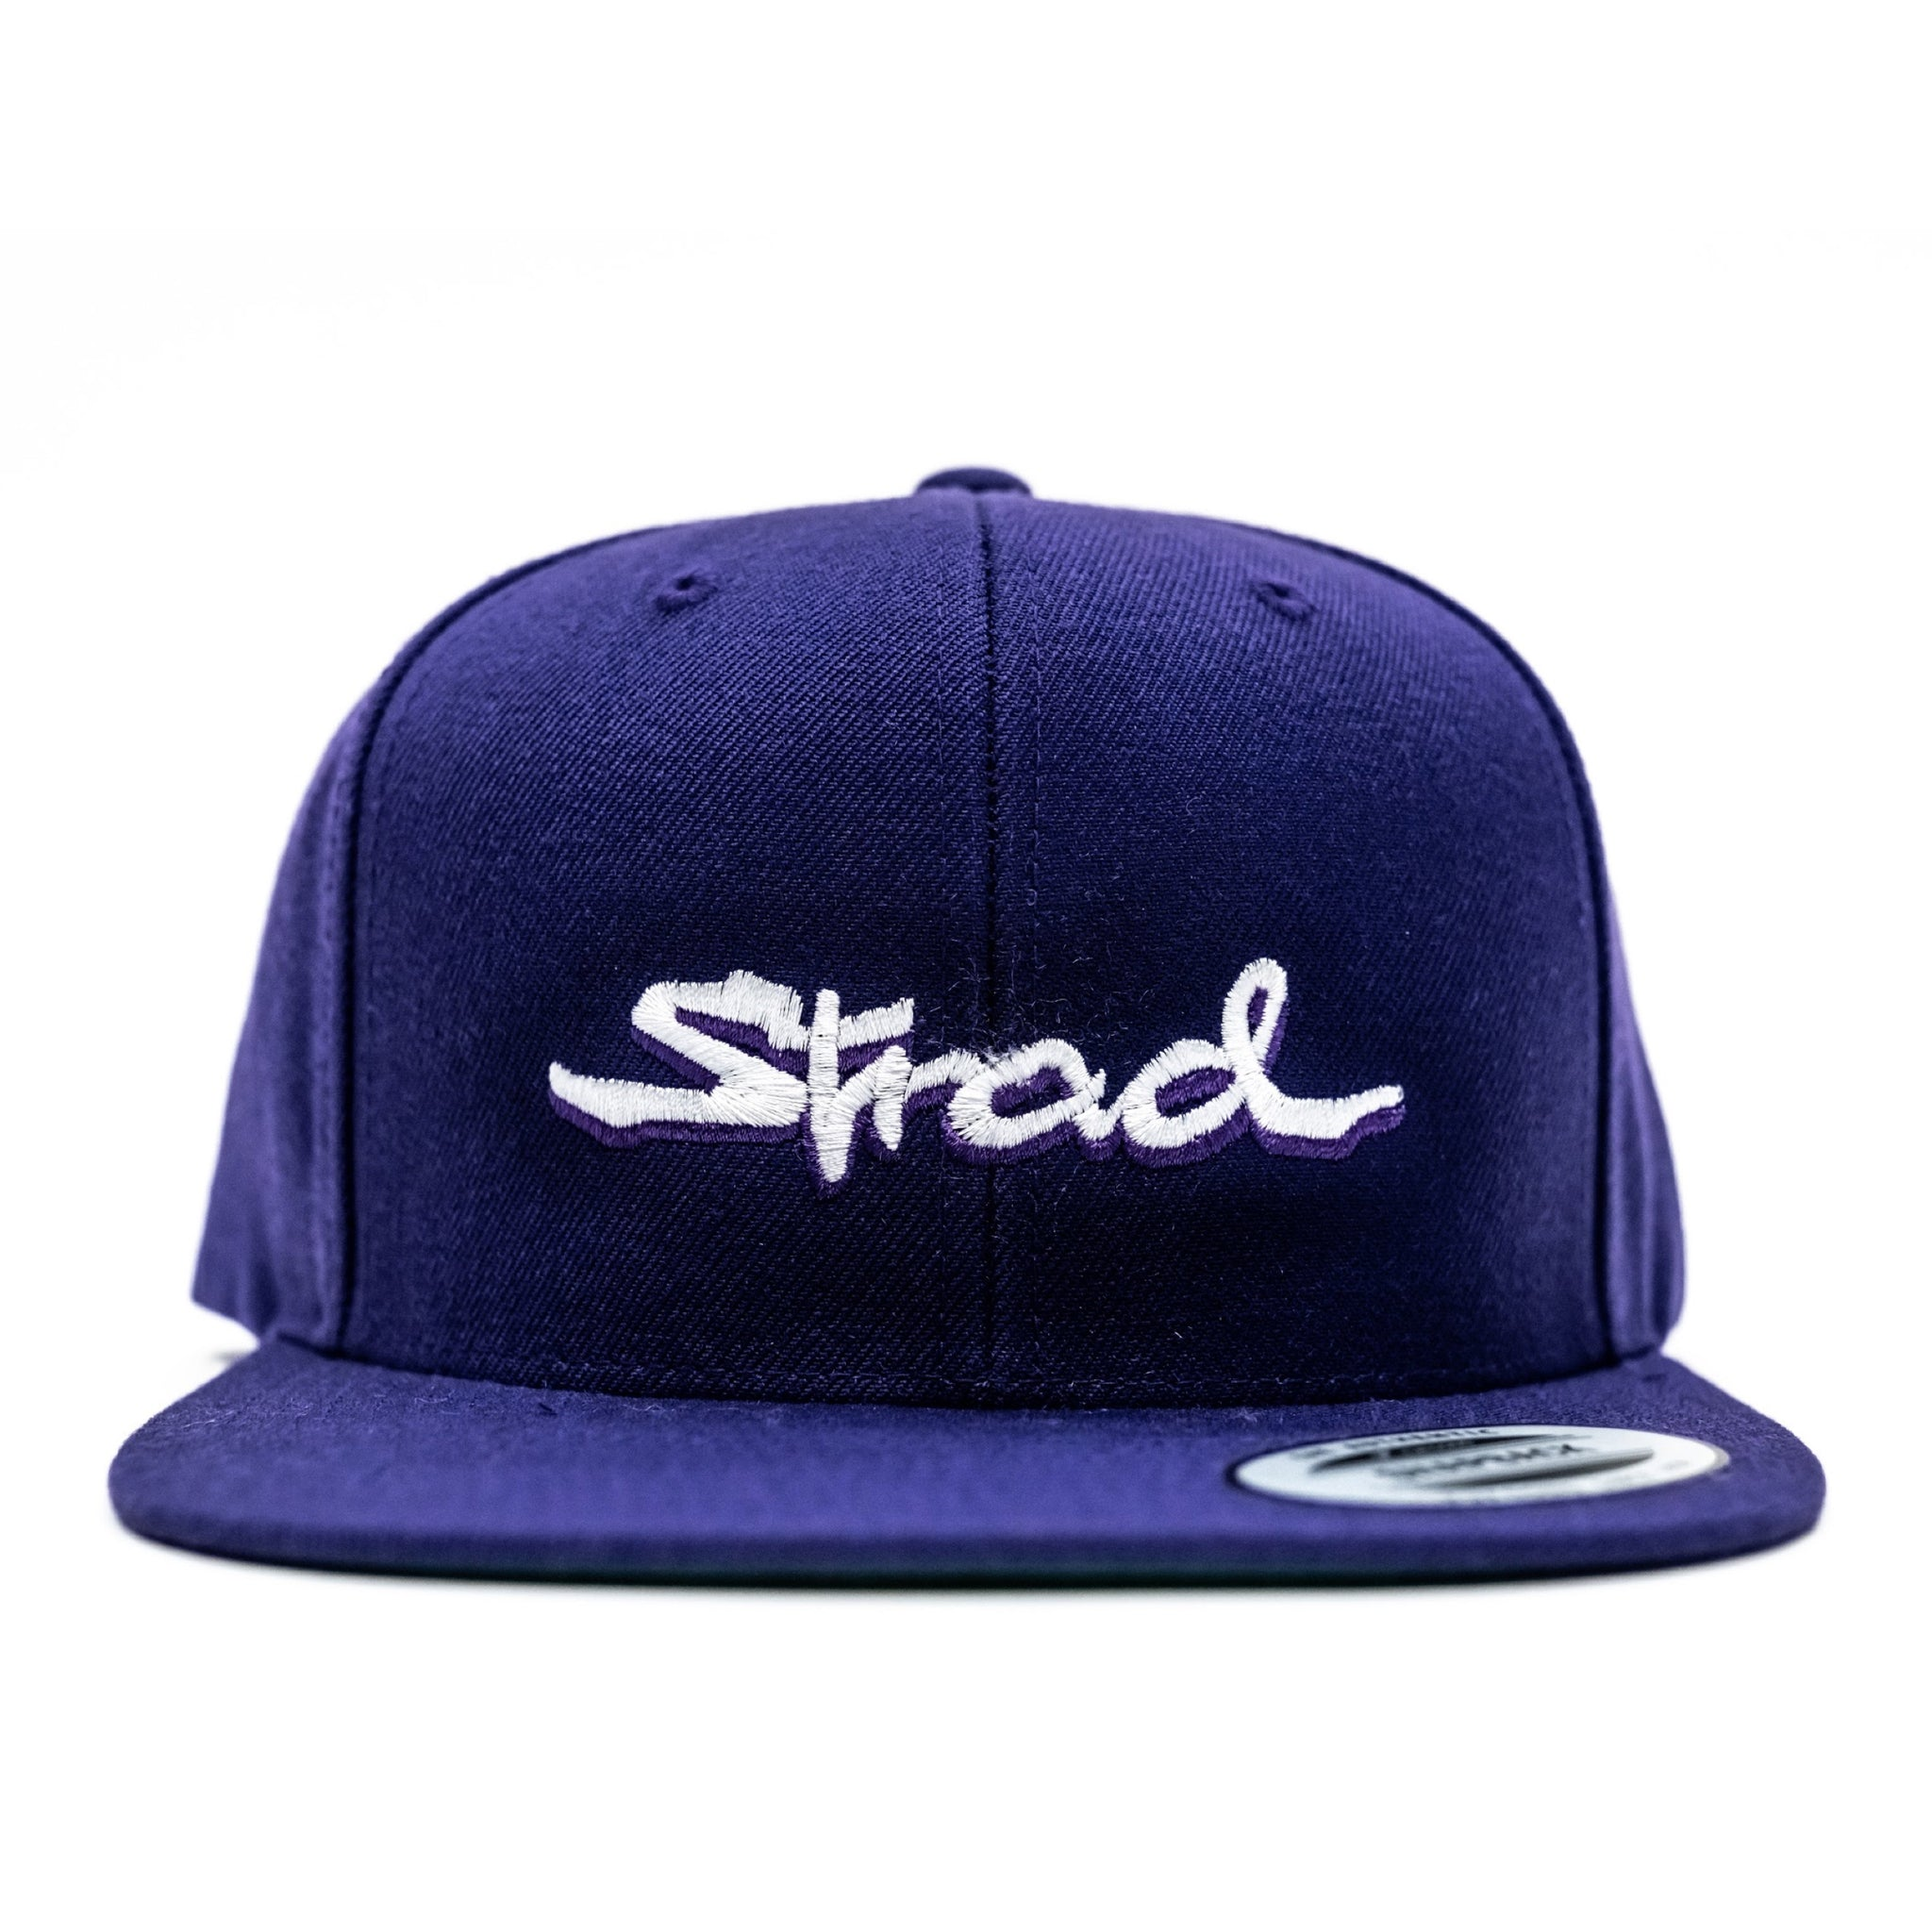 The Strad Hat